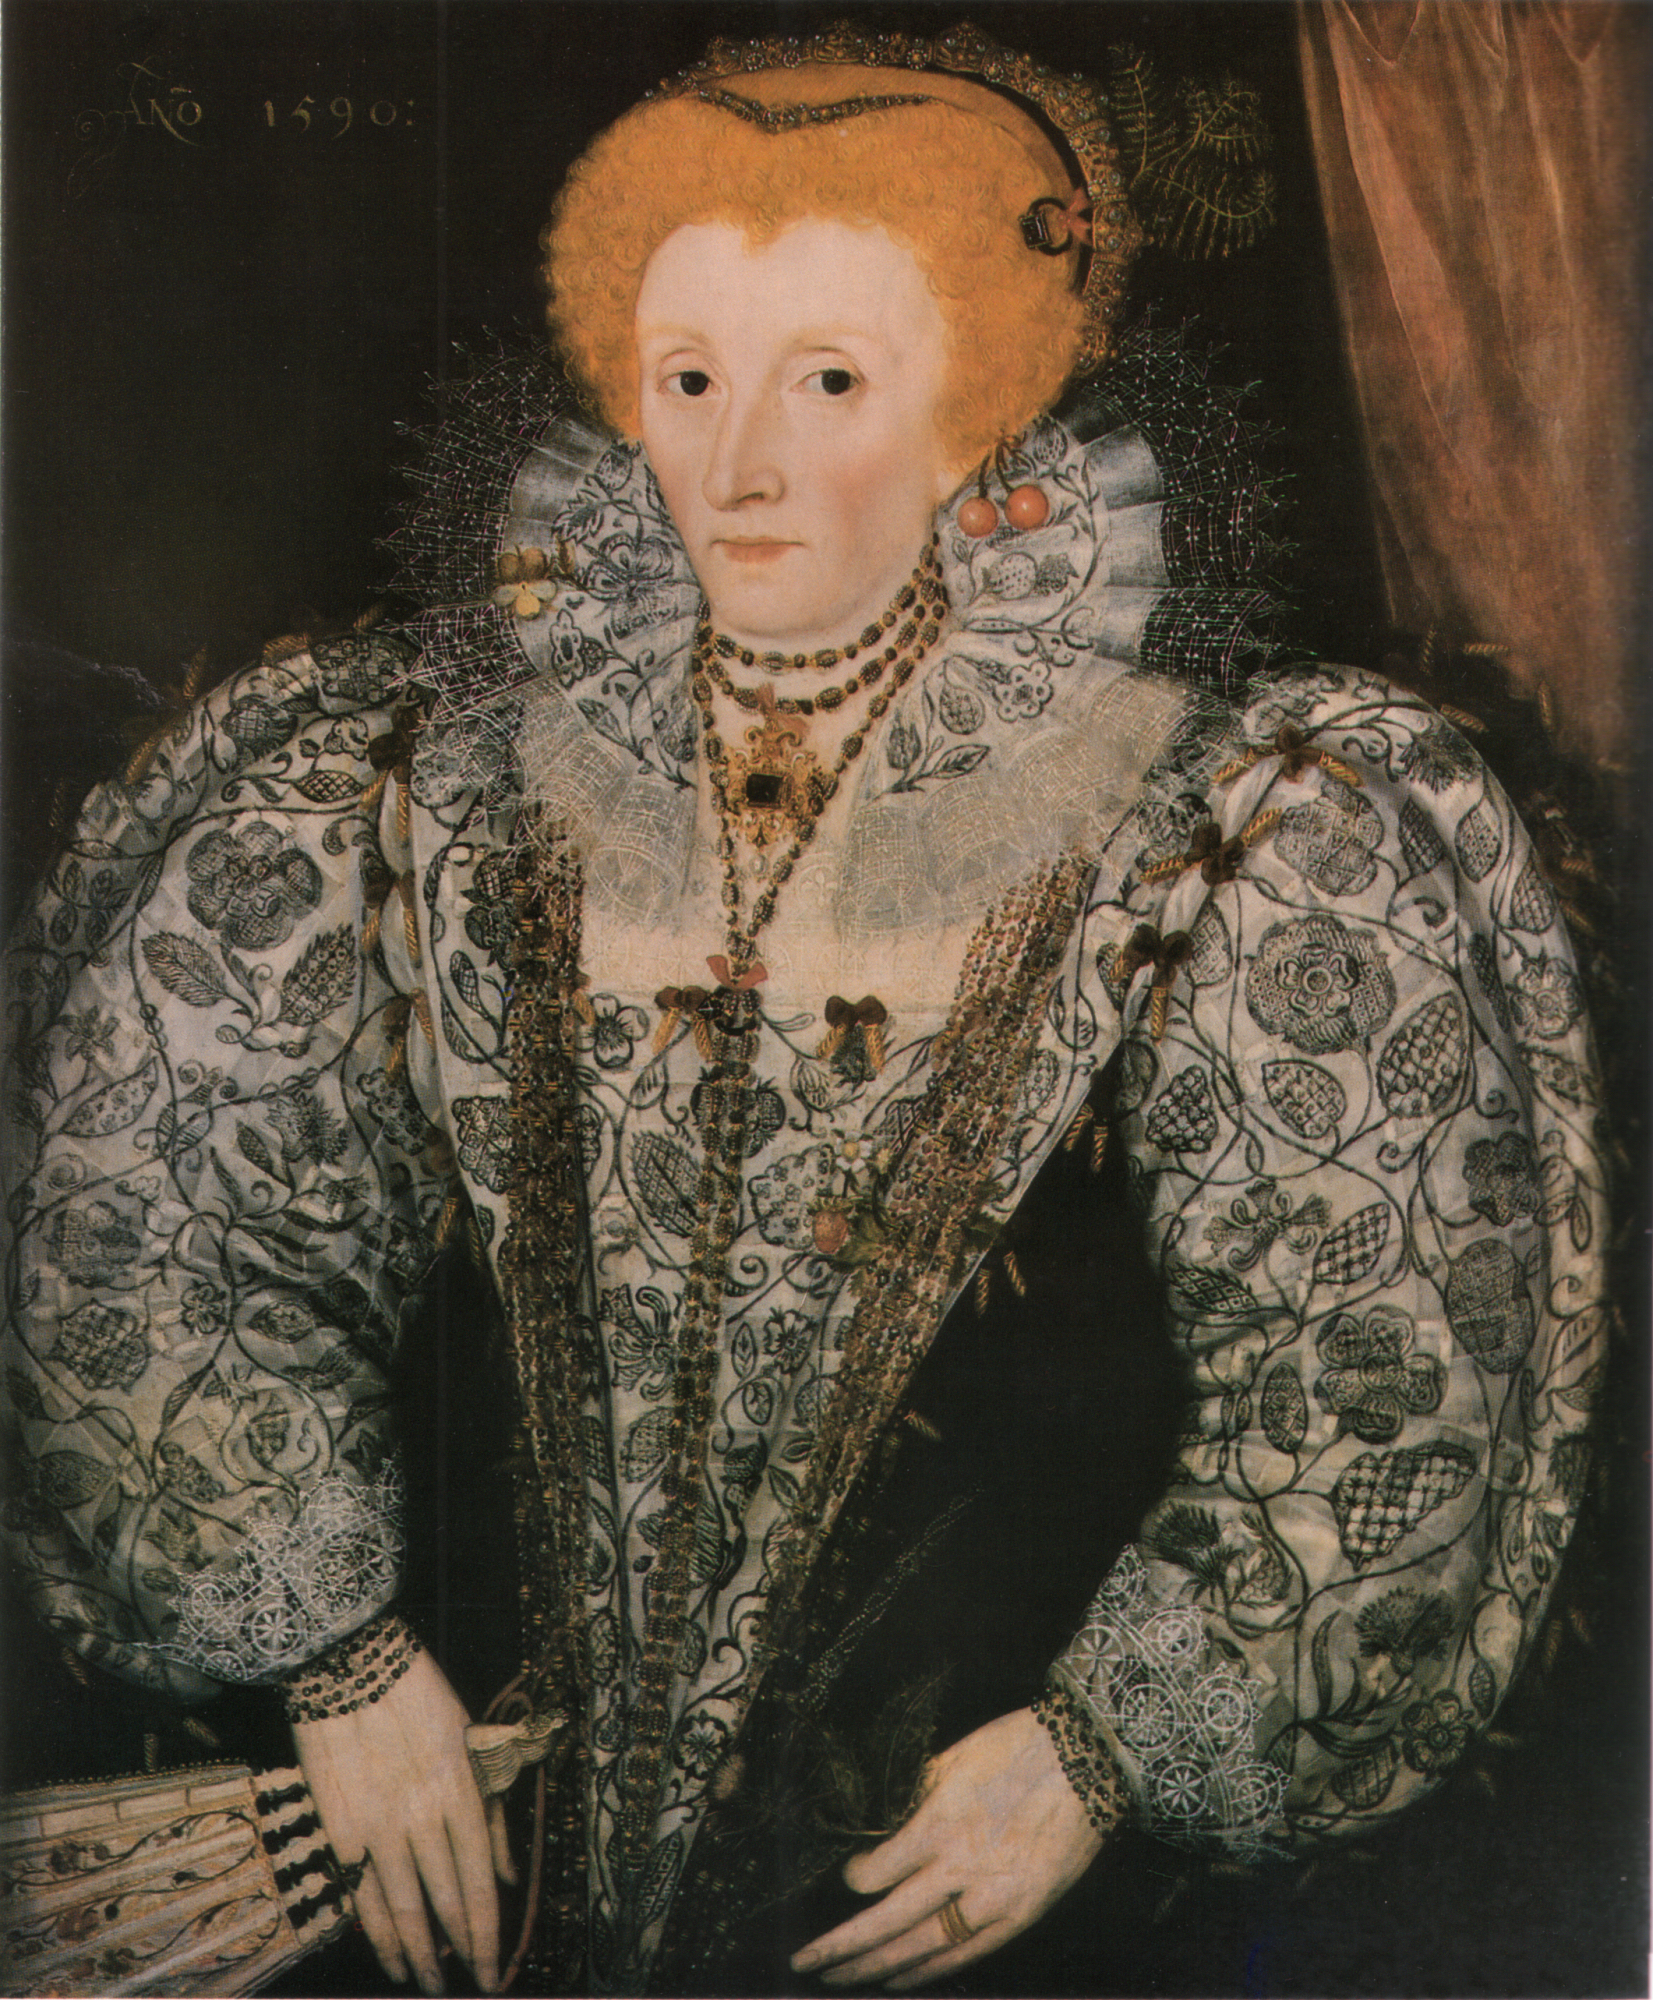 Portrait of Elizabeth I, 1590, artist unknown.